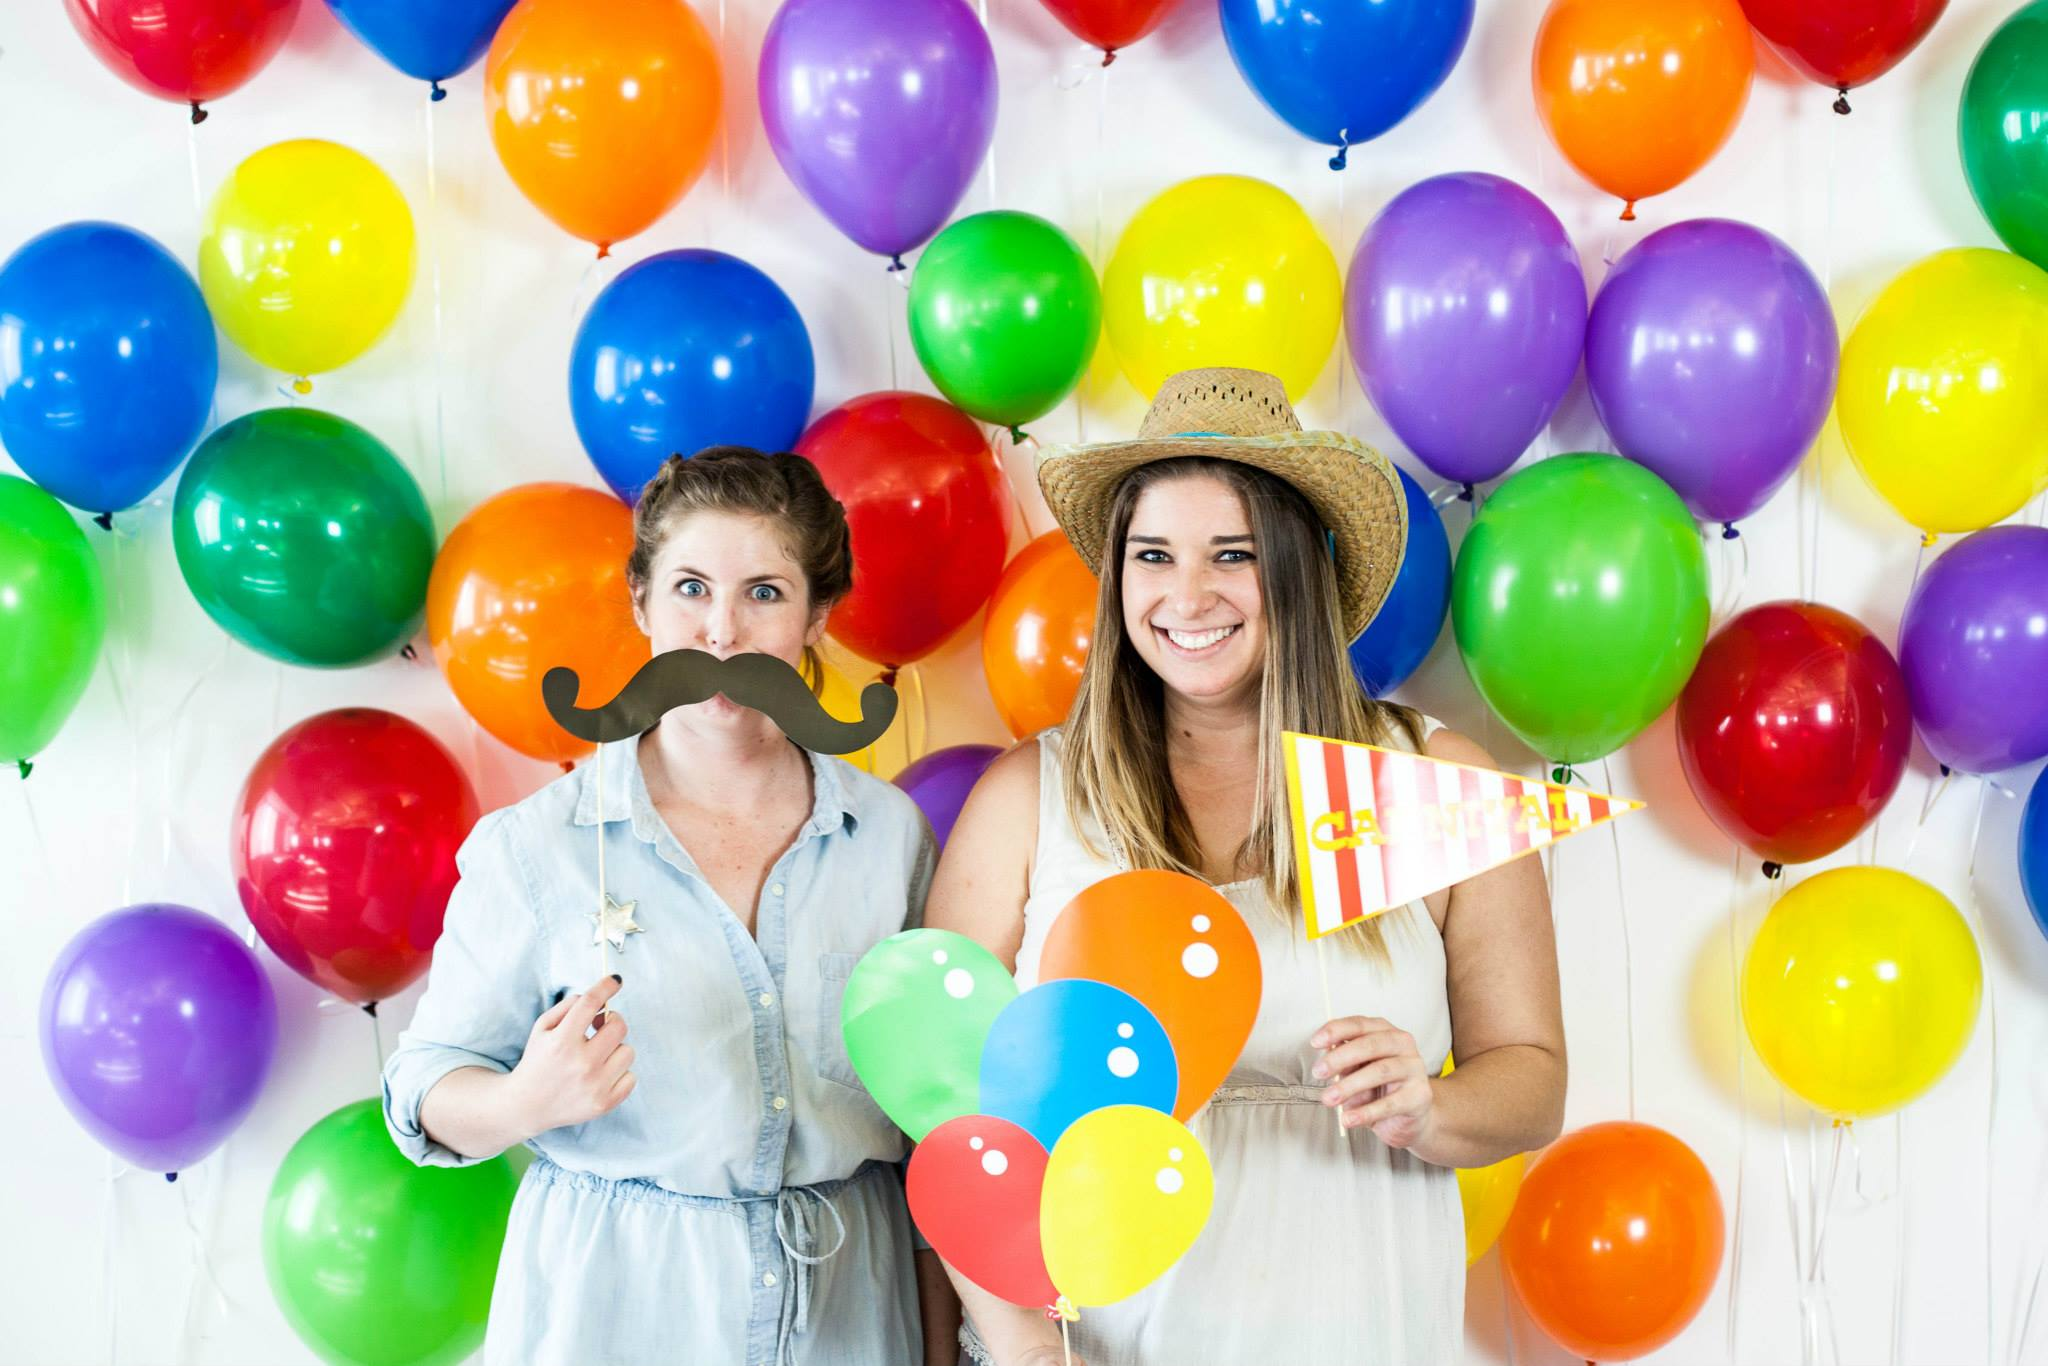 Photo of Hannah & Anne with balloon background